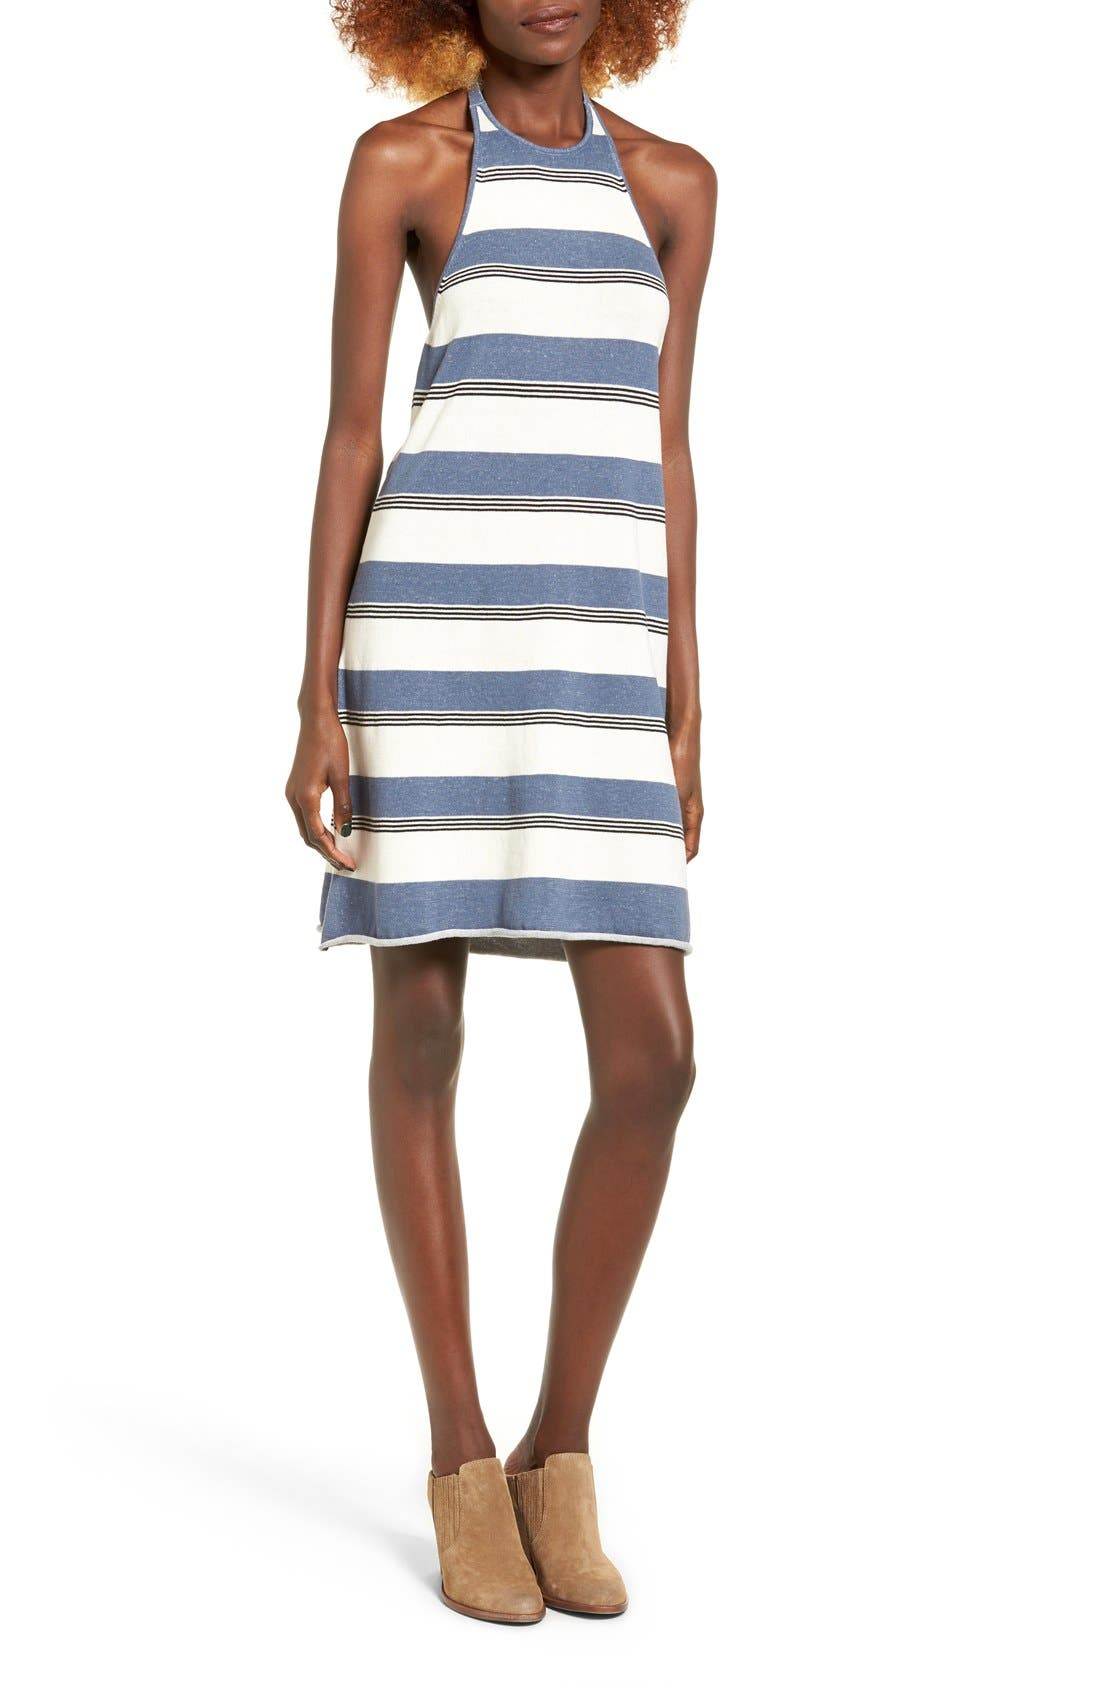 The Fifth Label Sunset View Dress